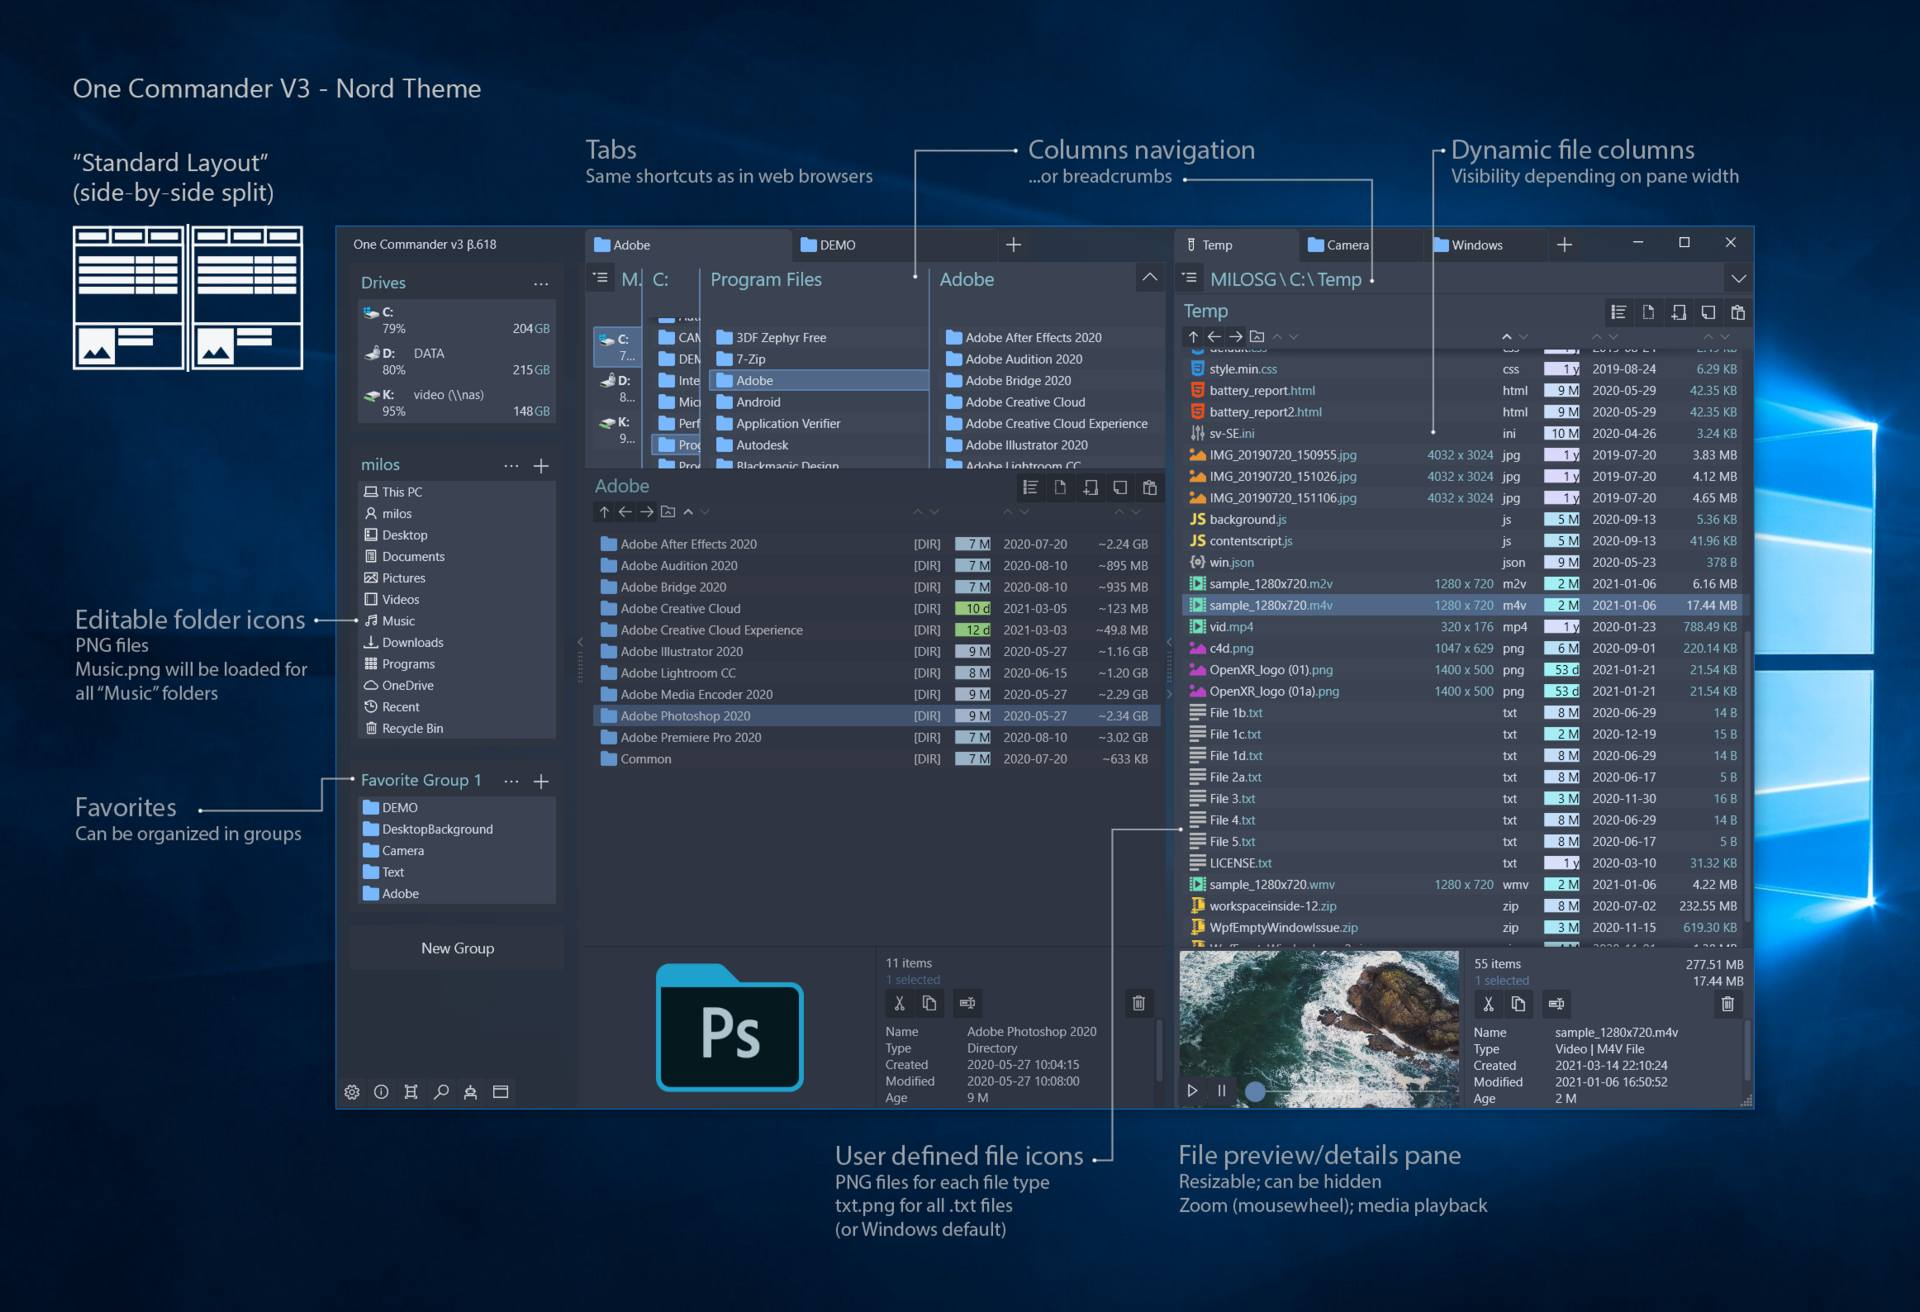 One Commander File Manager for Windows 10